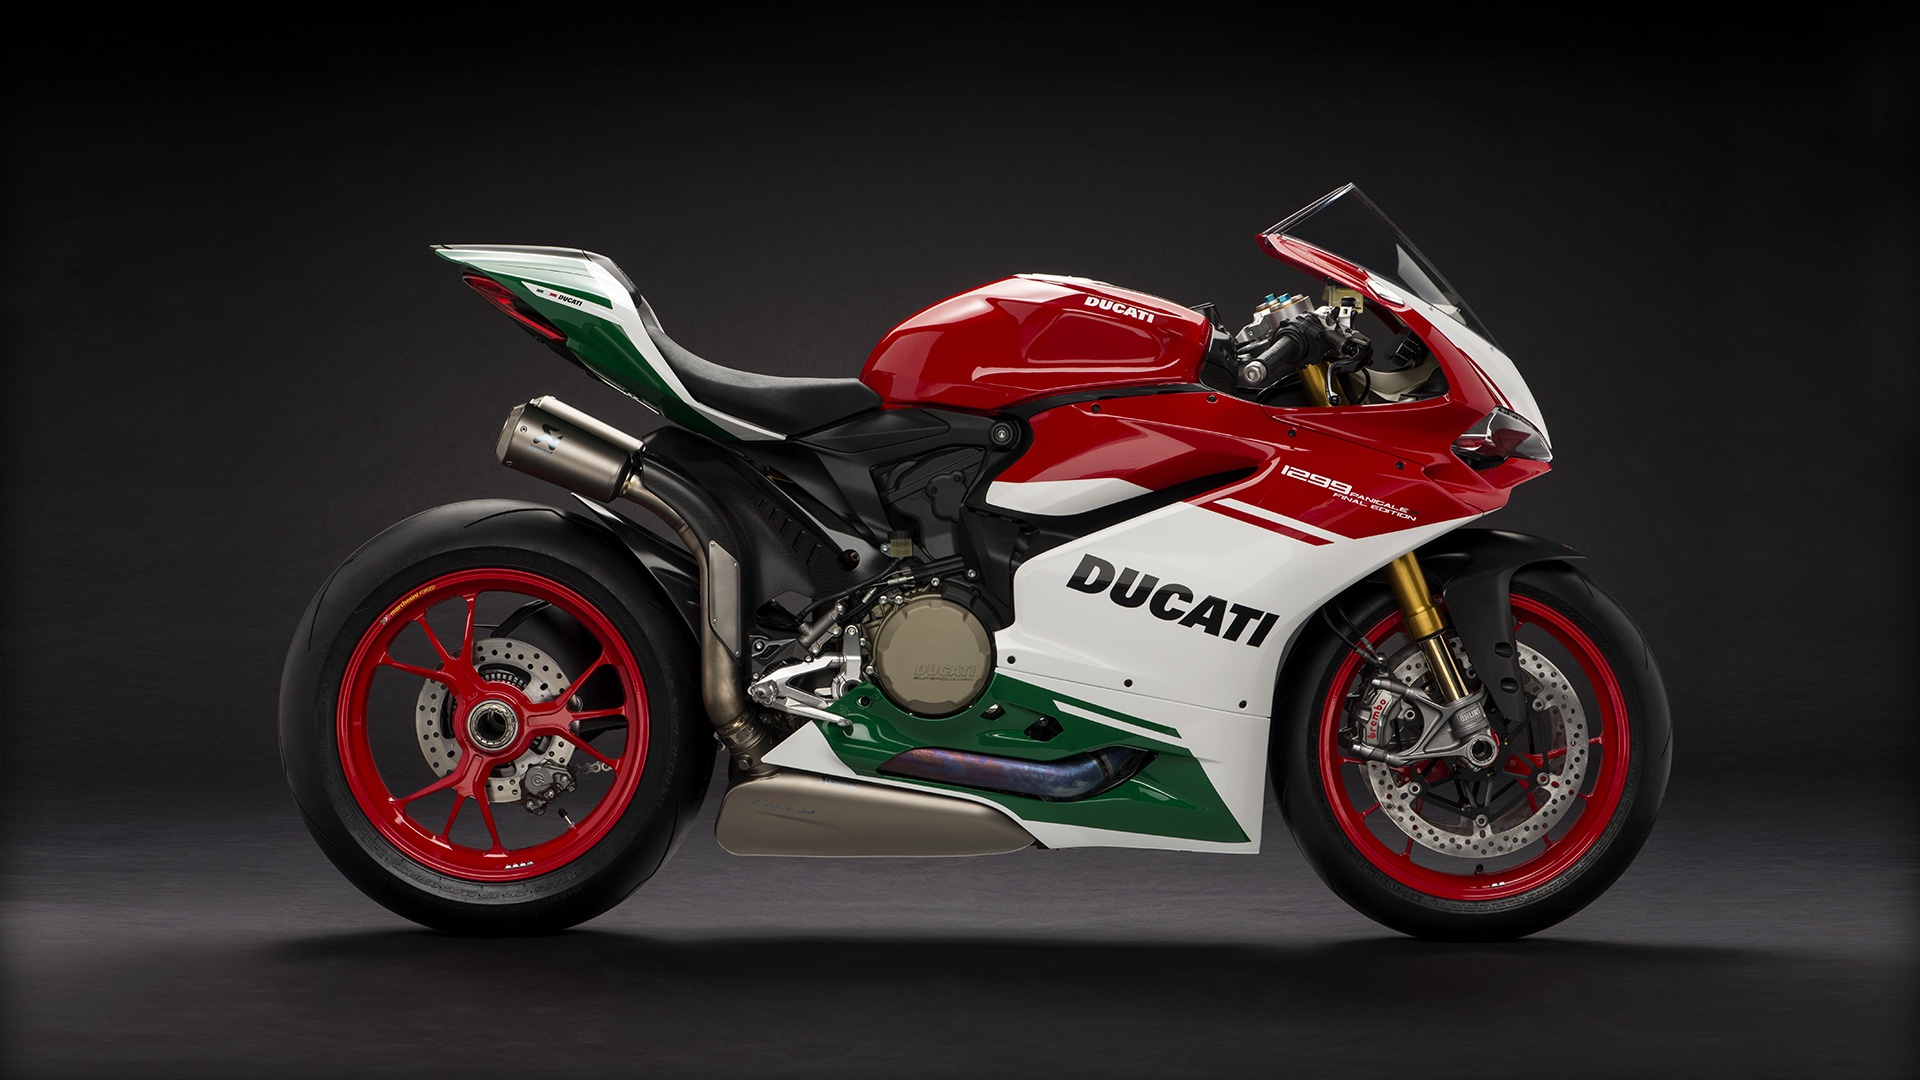 Panigale_Final-Edition_2018_Studio_FE_C01_Gallery_1920x1080.mediagallery_output_image_[1920x1080]